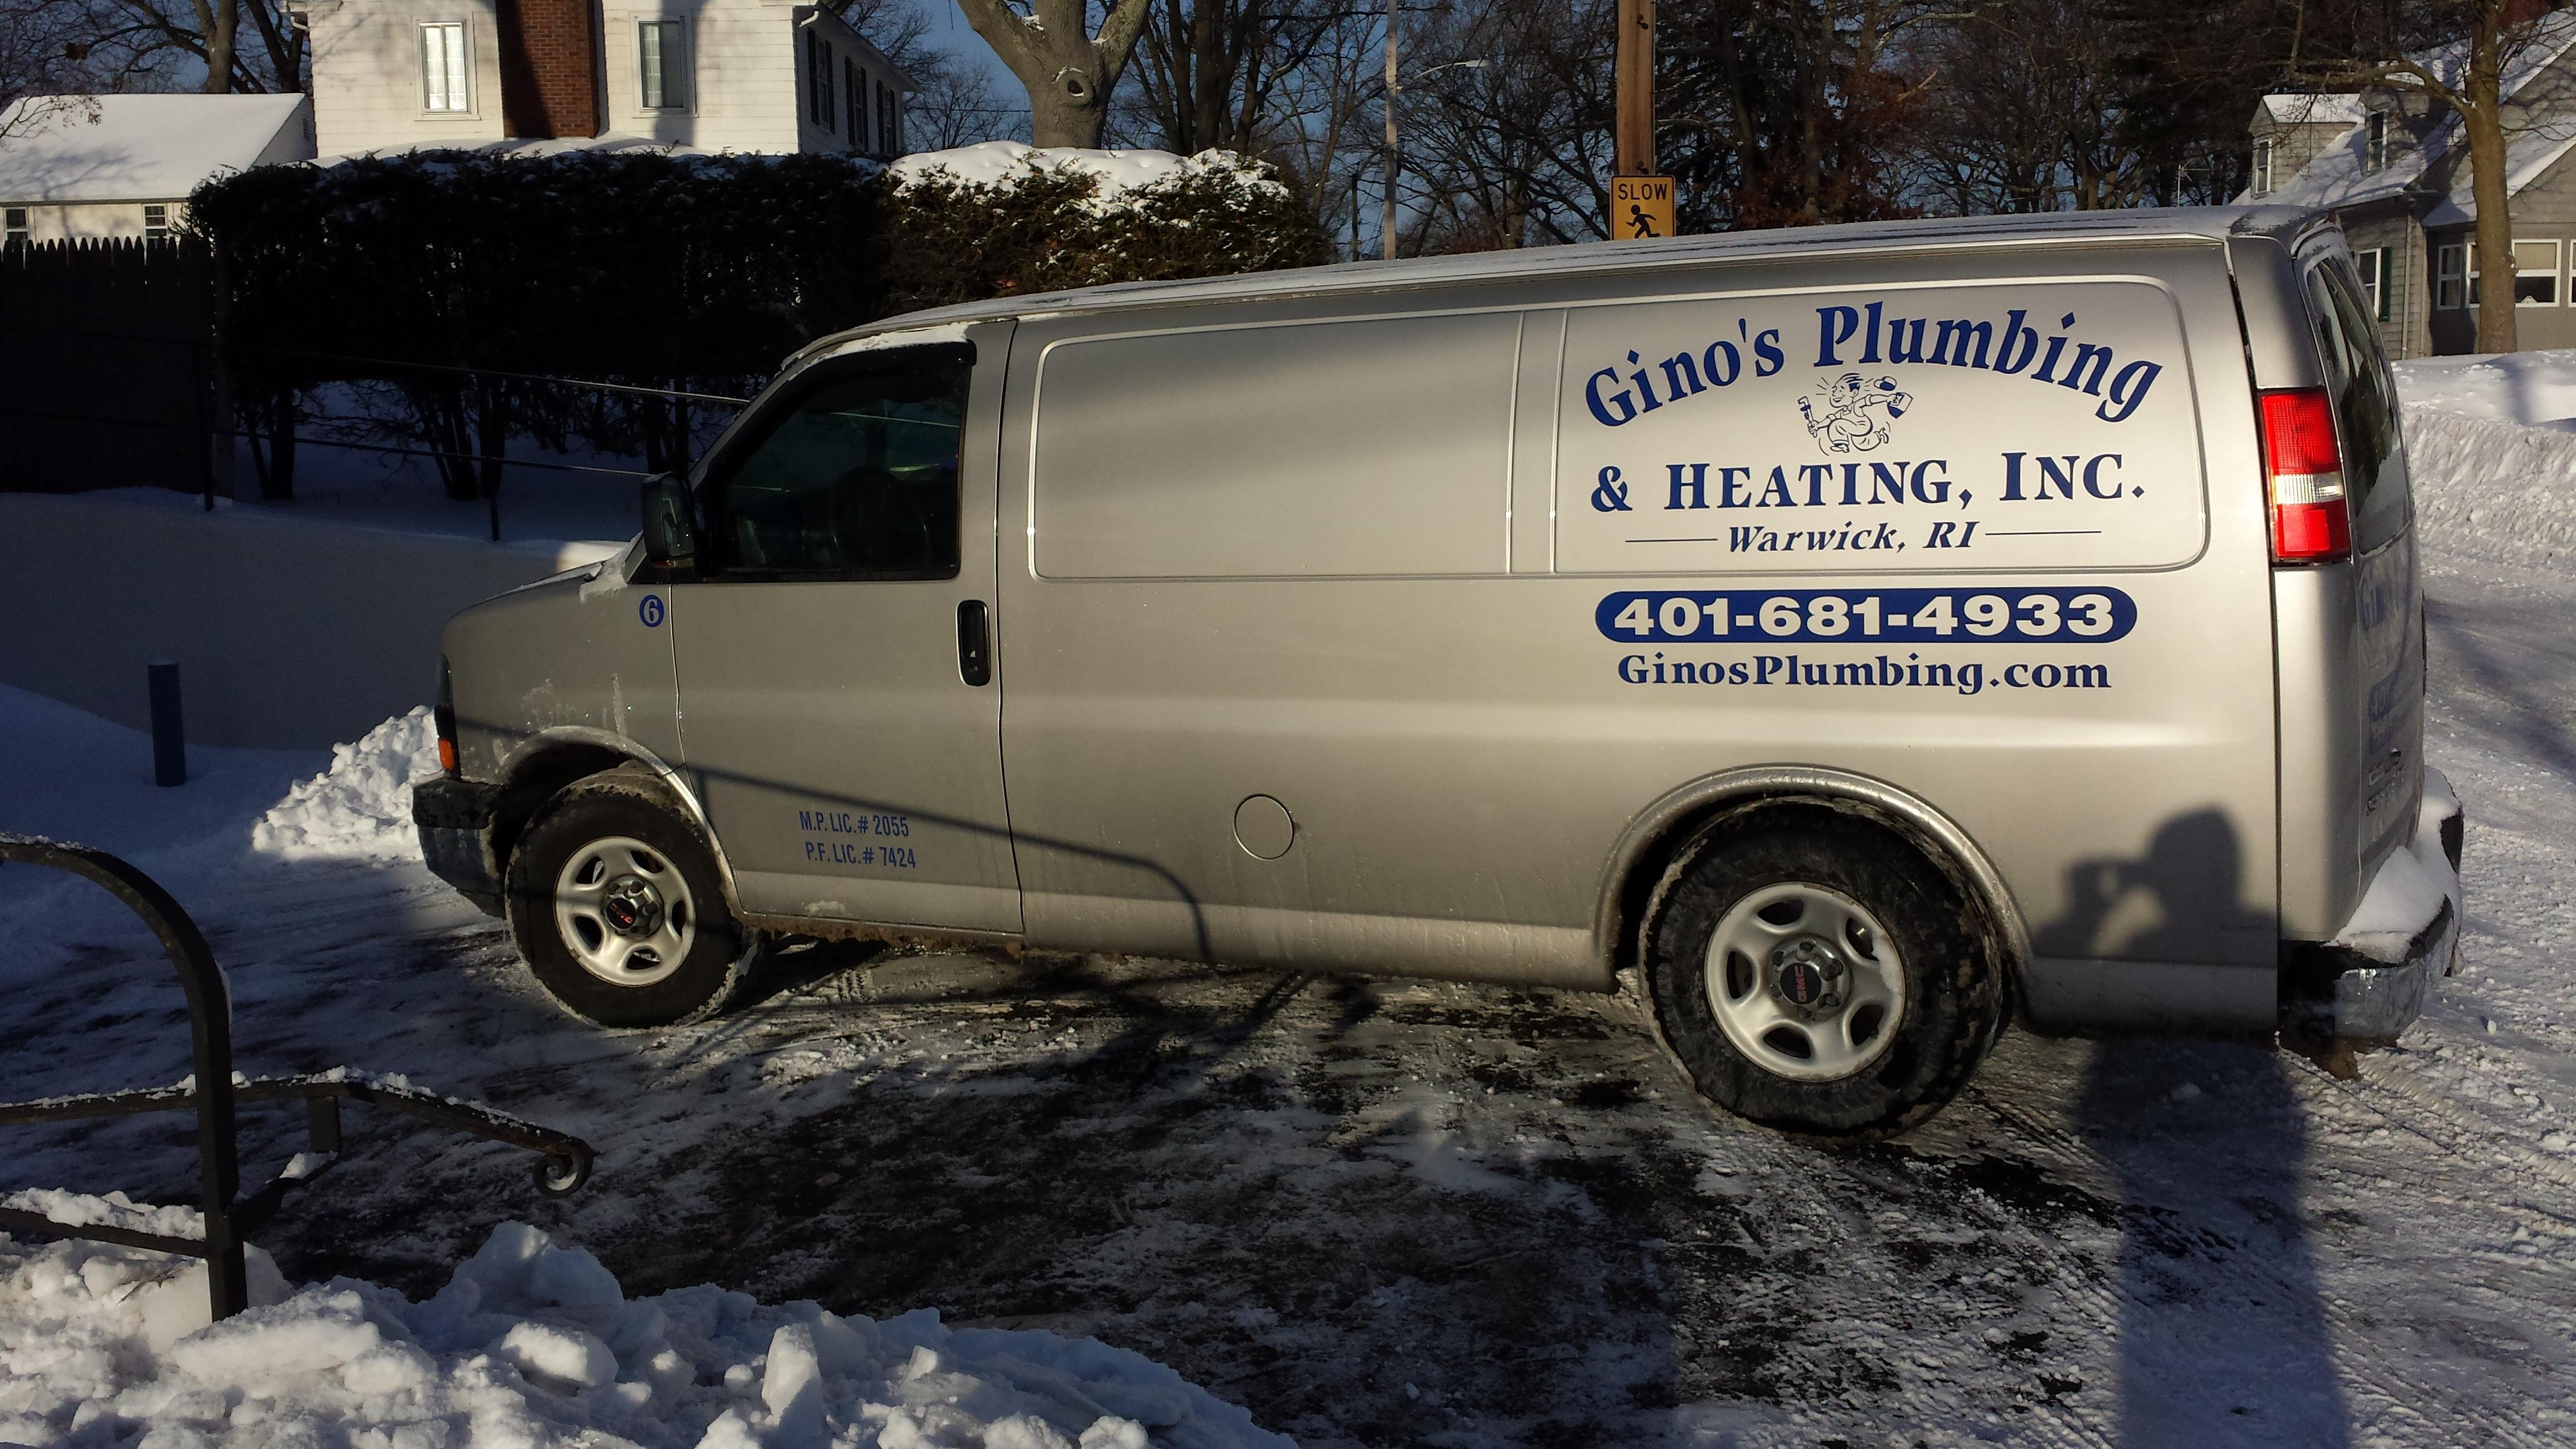 Gino's Plumbing & Heating